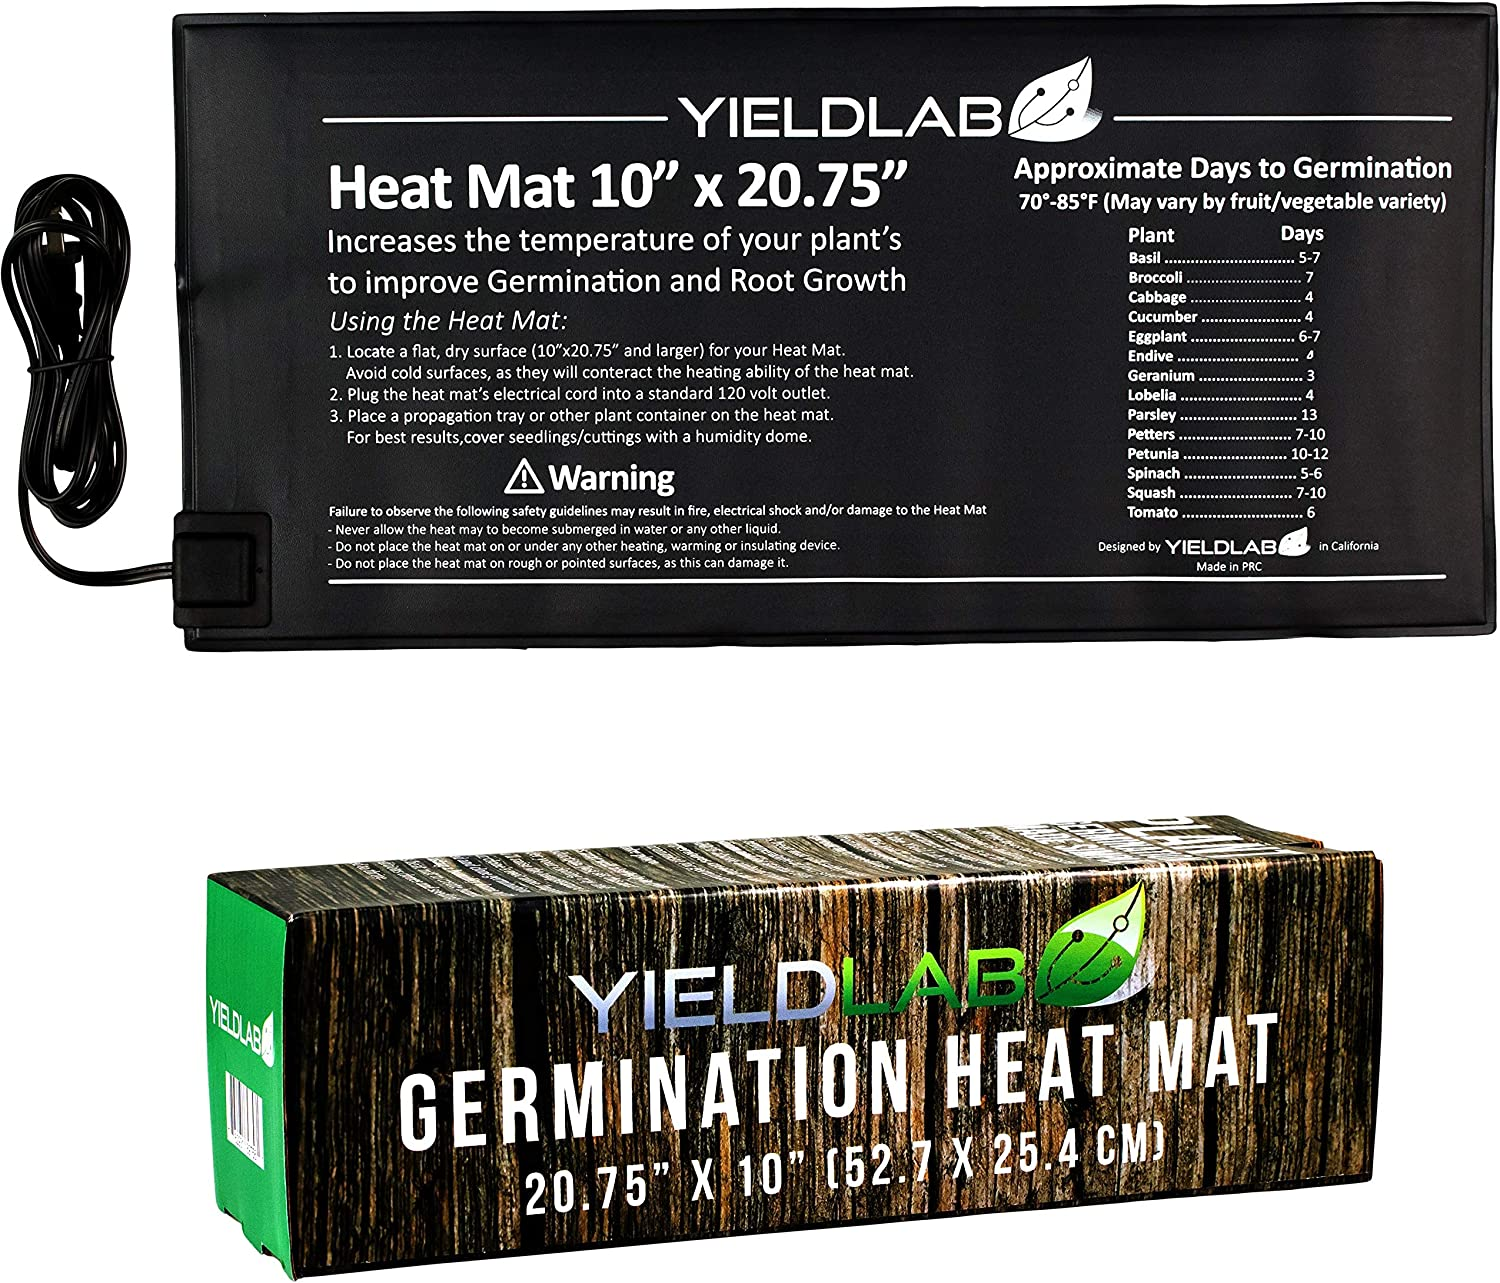 Yield Lab Seed and Clone Heat Mat 20.75 x 10 Inch Hydroponic, Aeroponic, Horticulture Growing Equipment 20.75 x 10 Inch Heat Mat